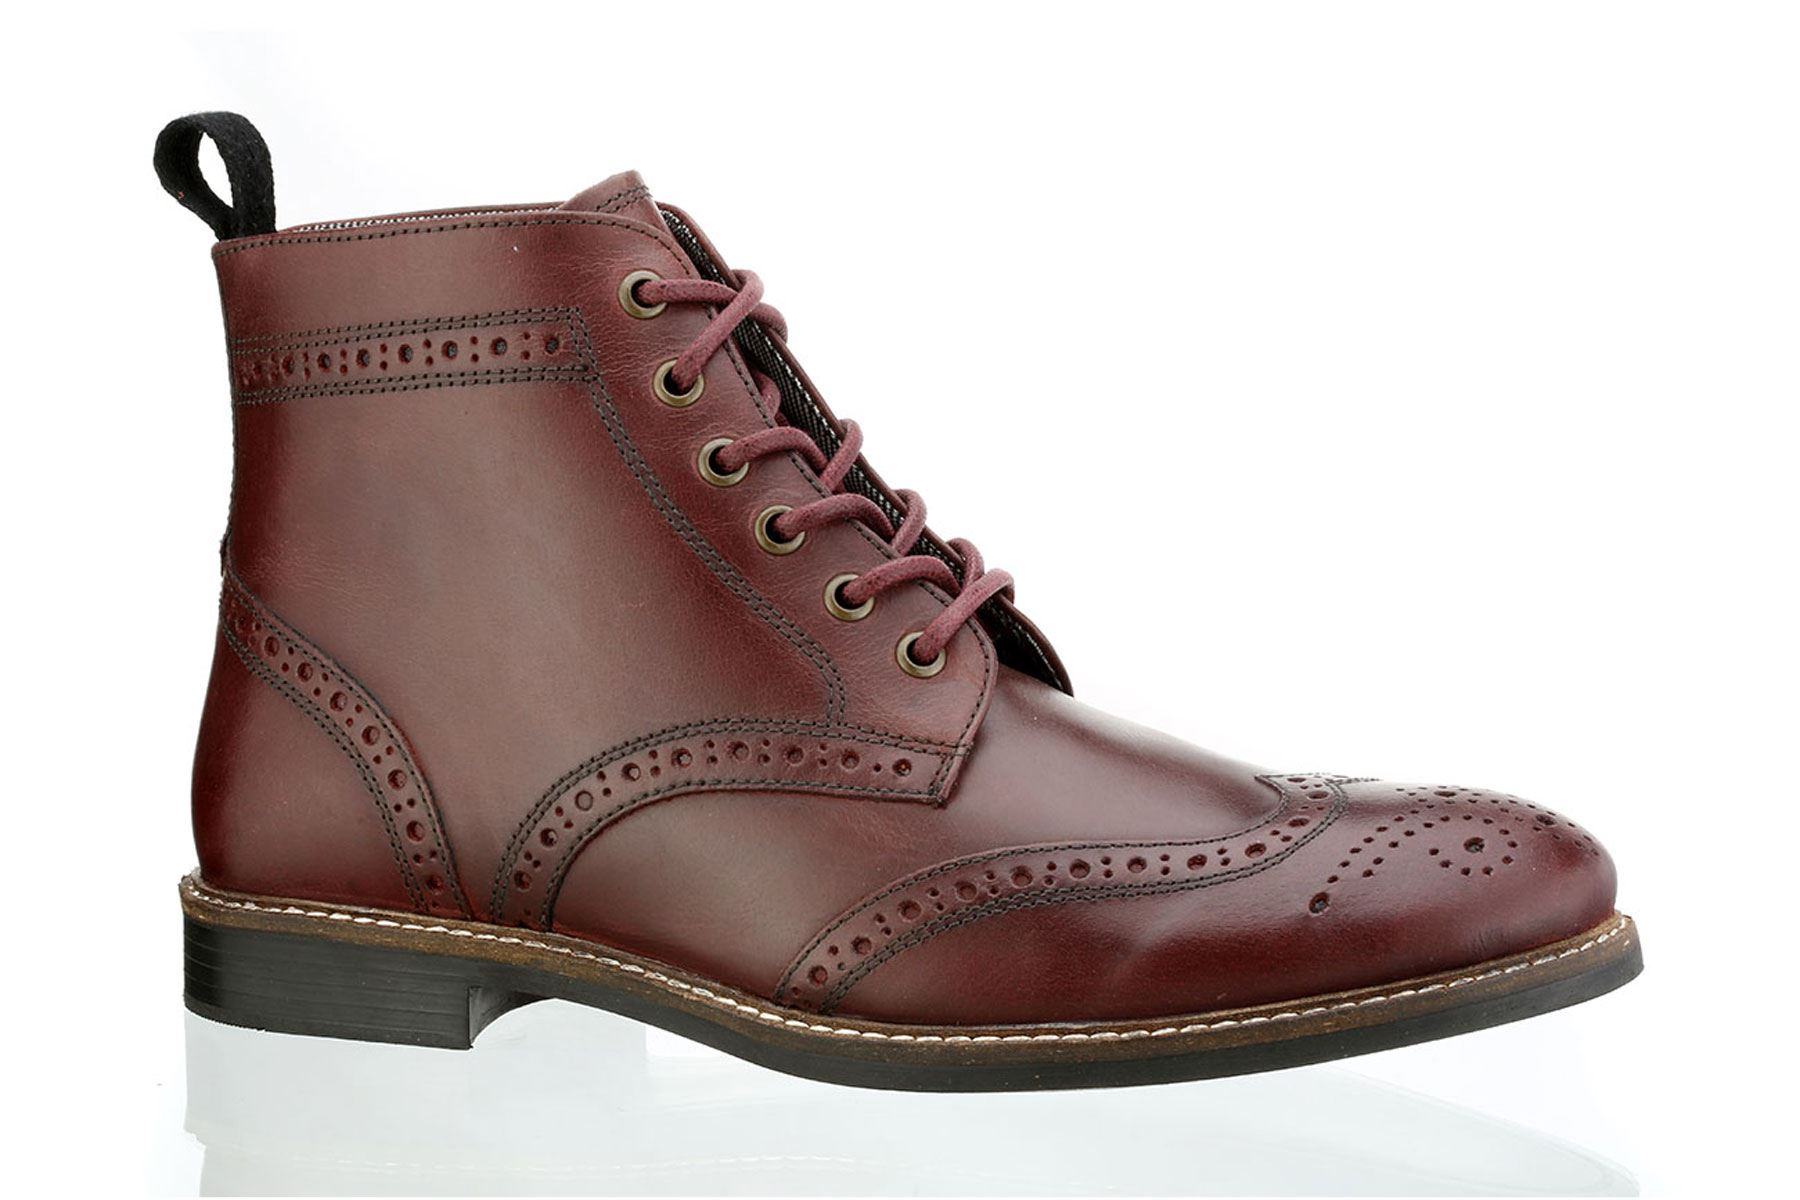 Red Tape Brogue Boots Leather 3itjJNZCy